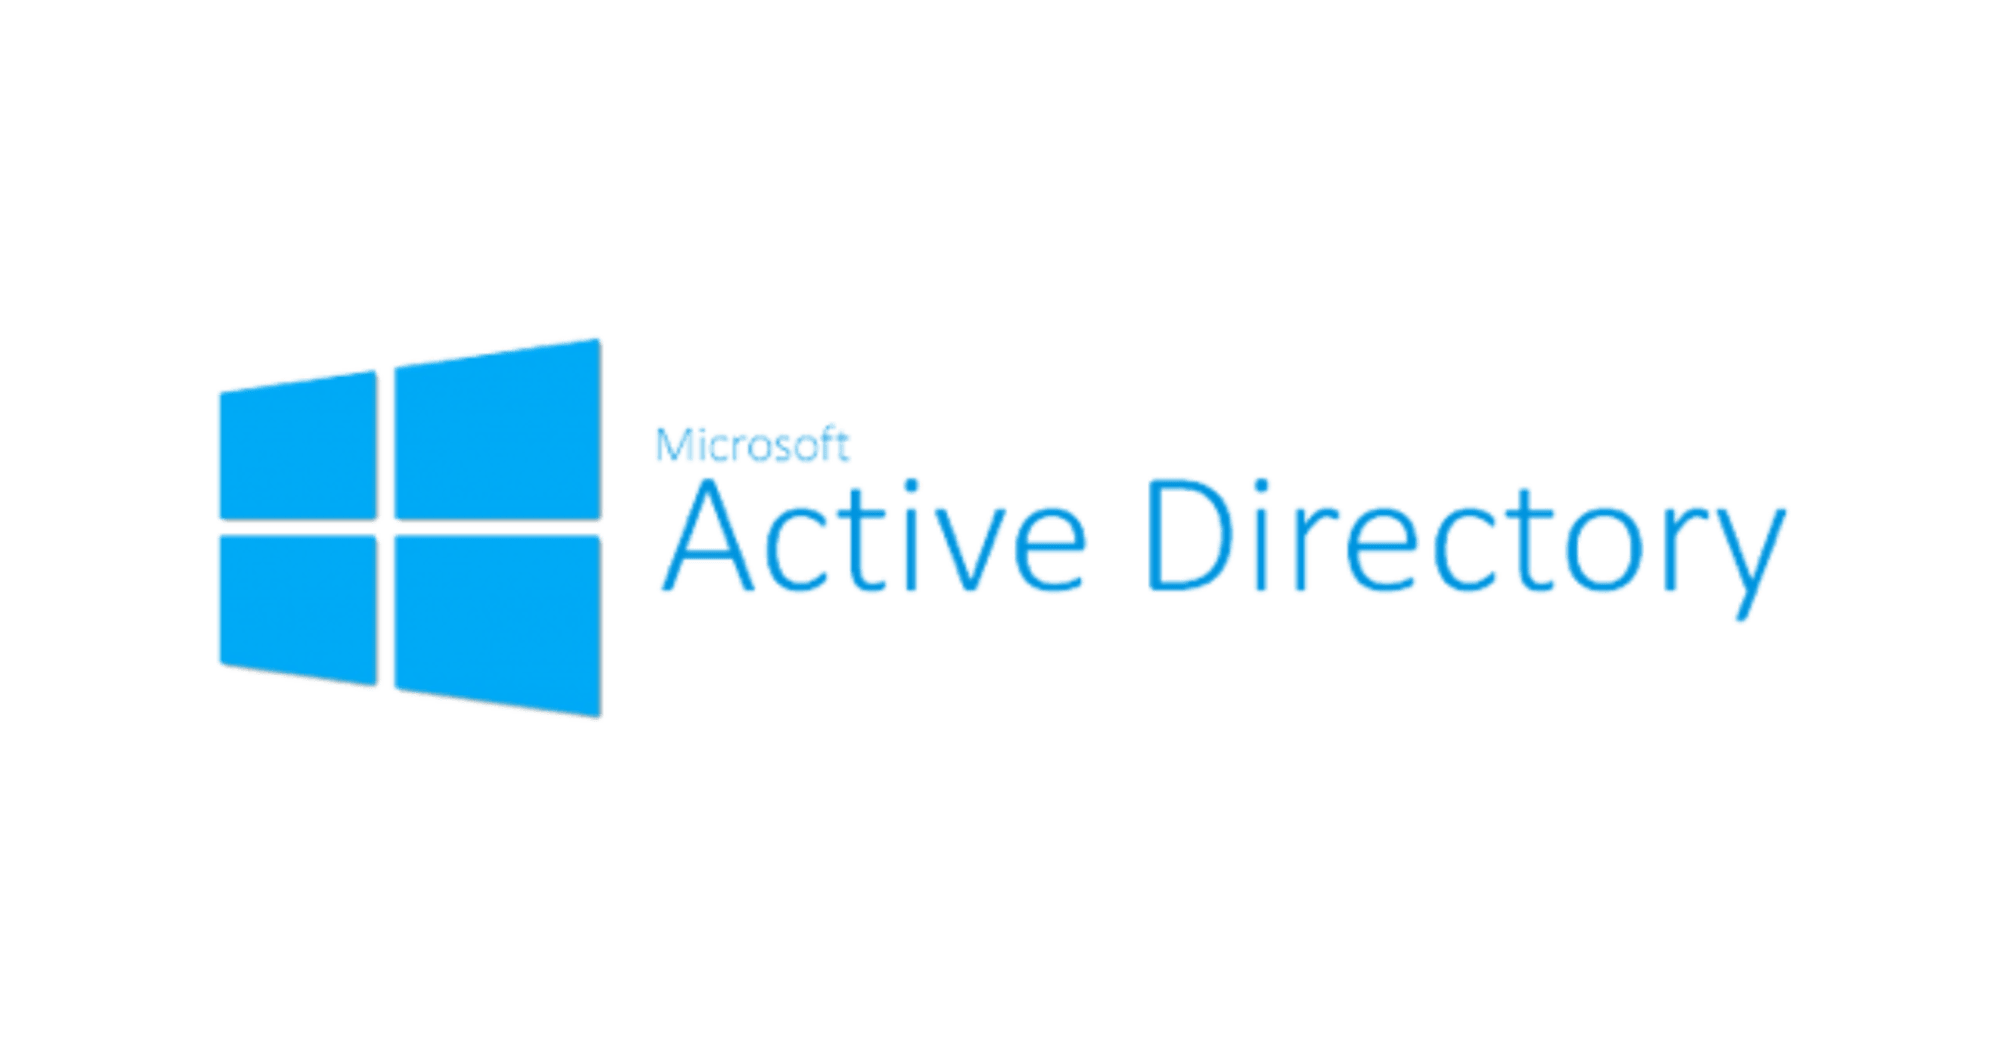 Get-AdUser: Finding Active Directory users with PowerShell